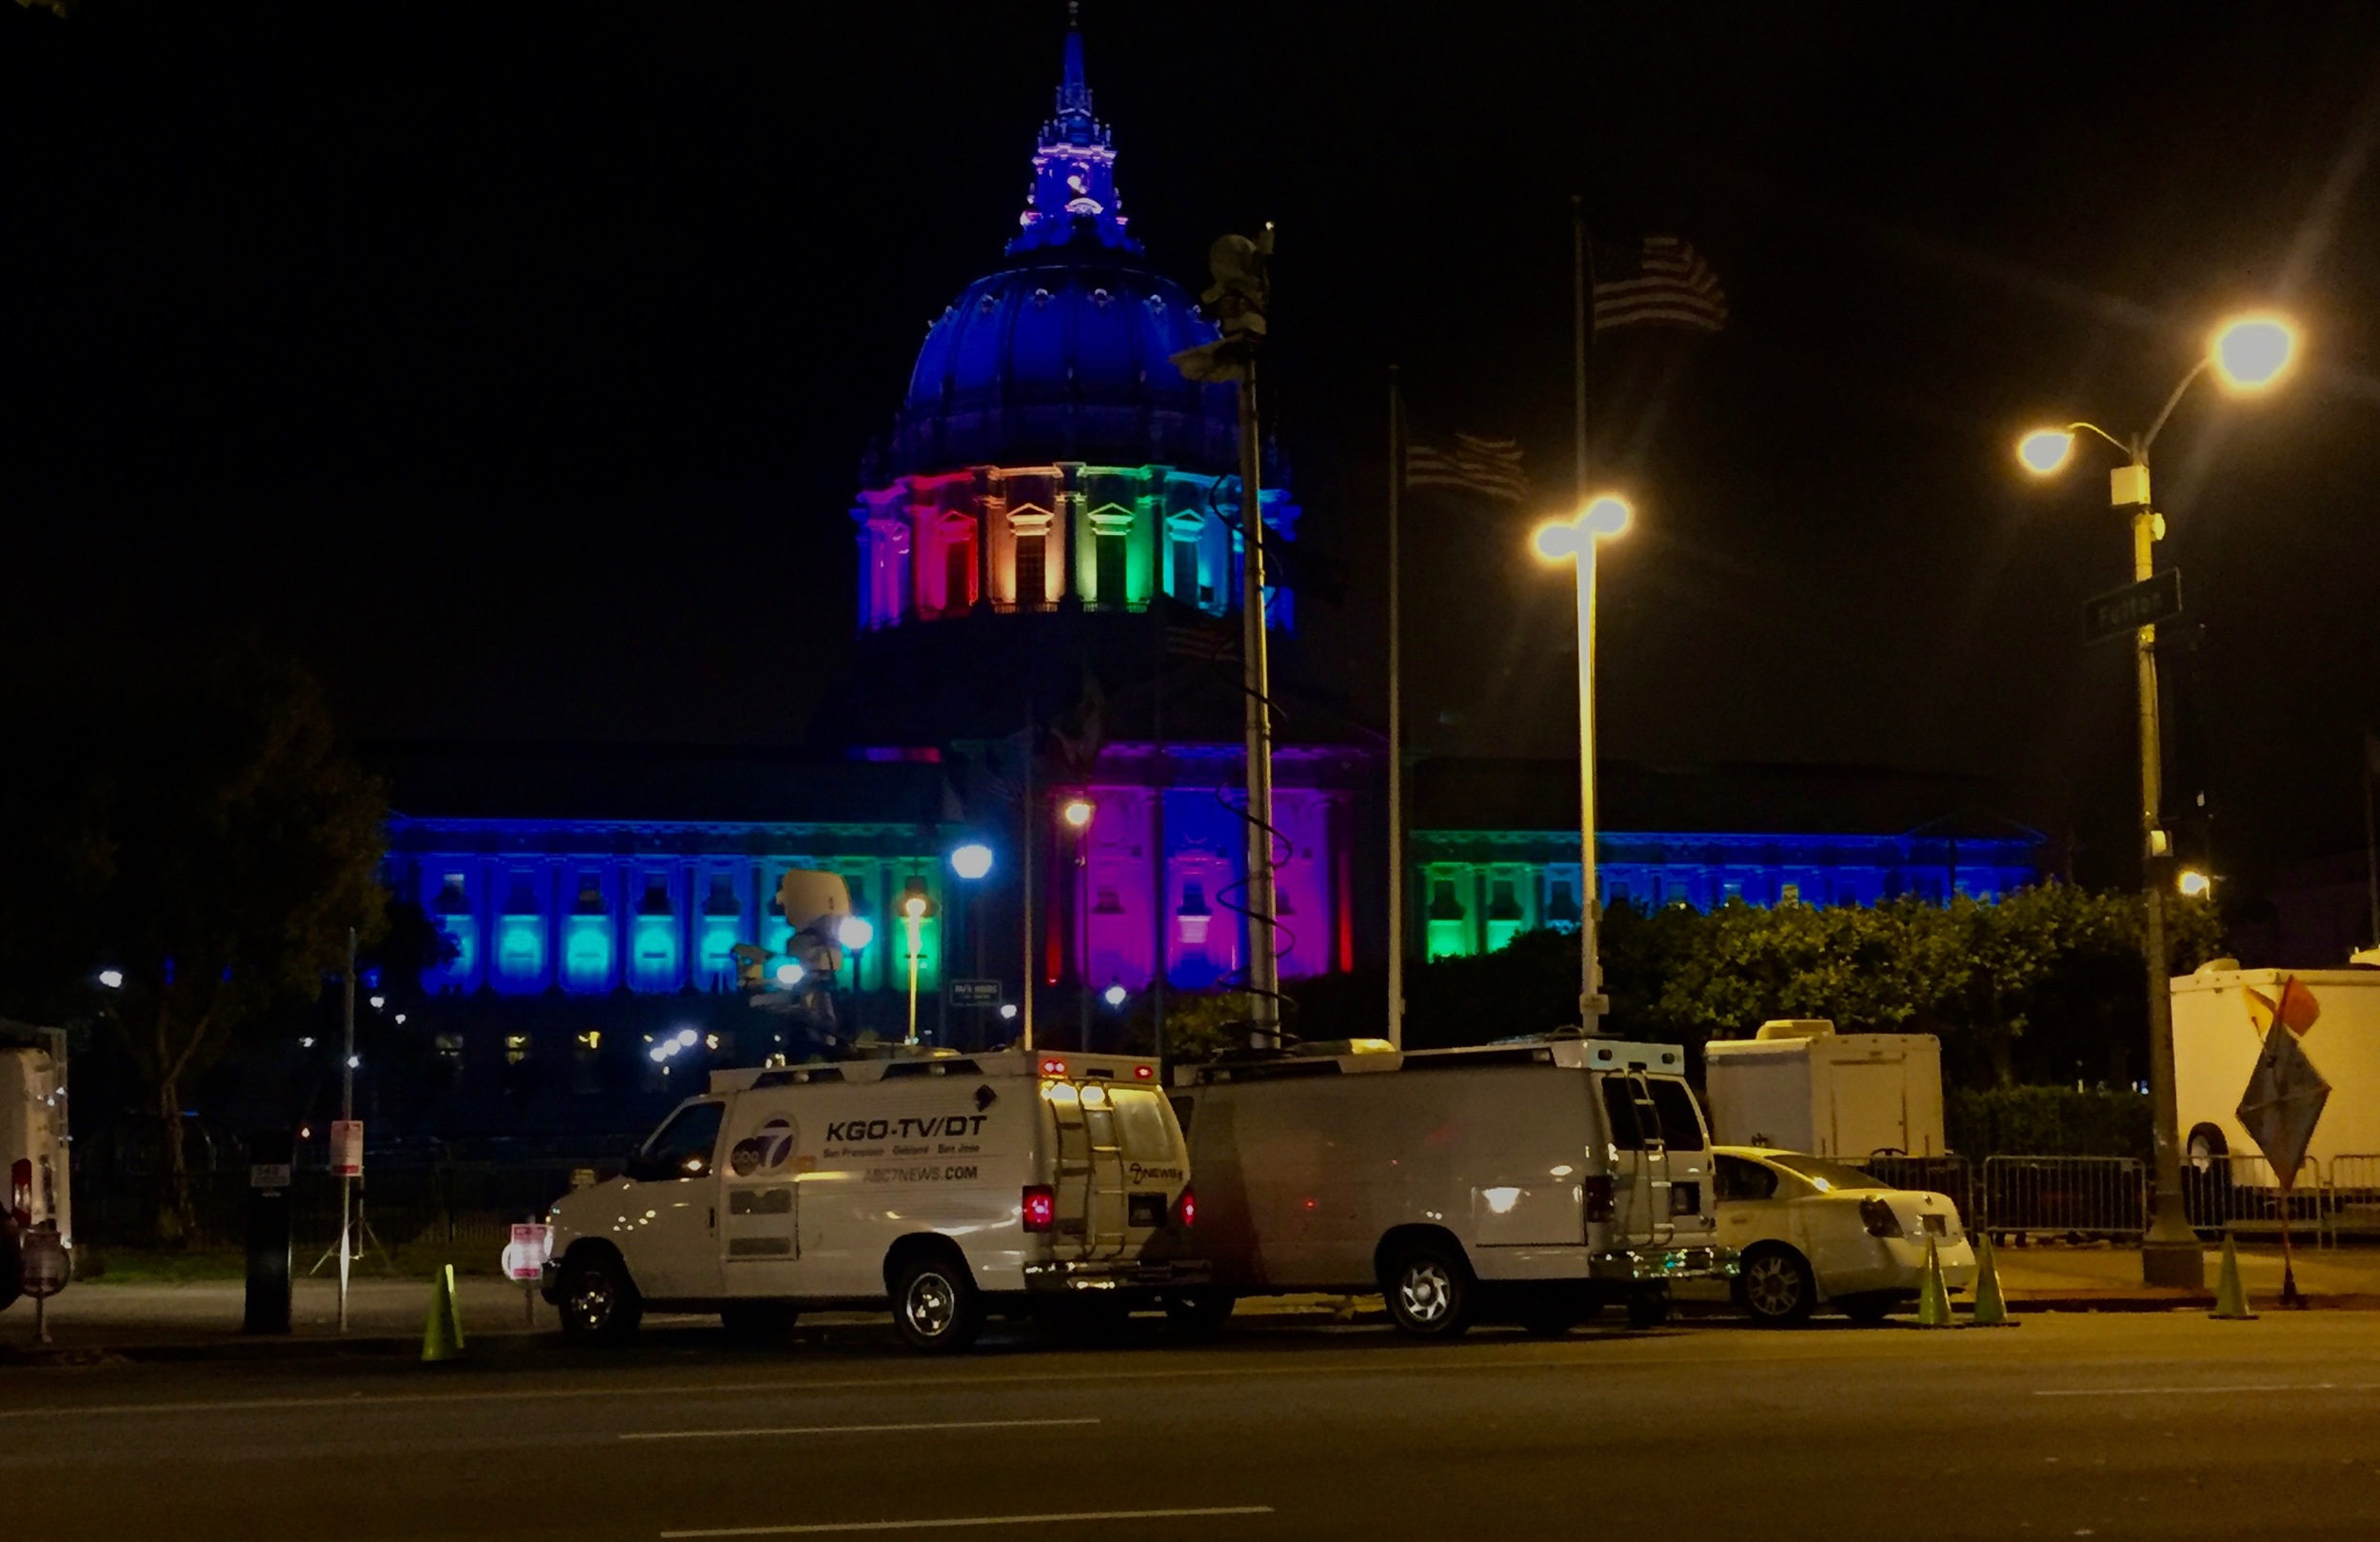 City Hall showing it's PRIDE